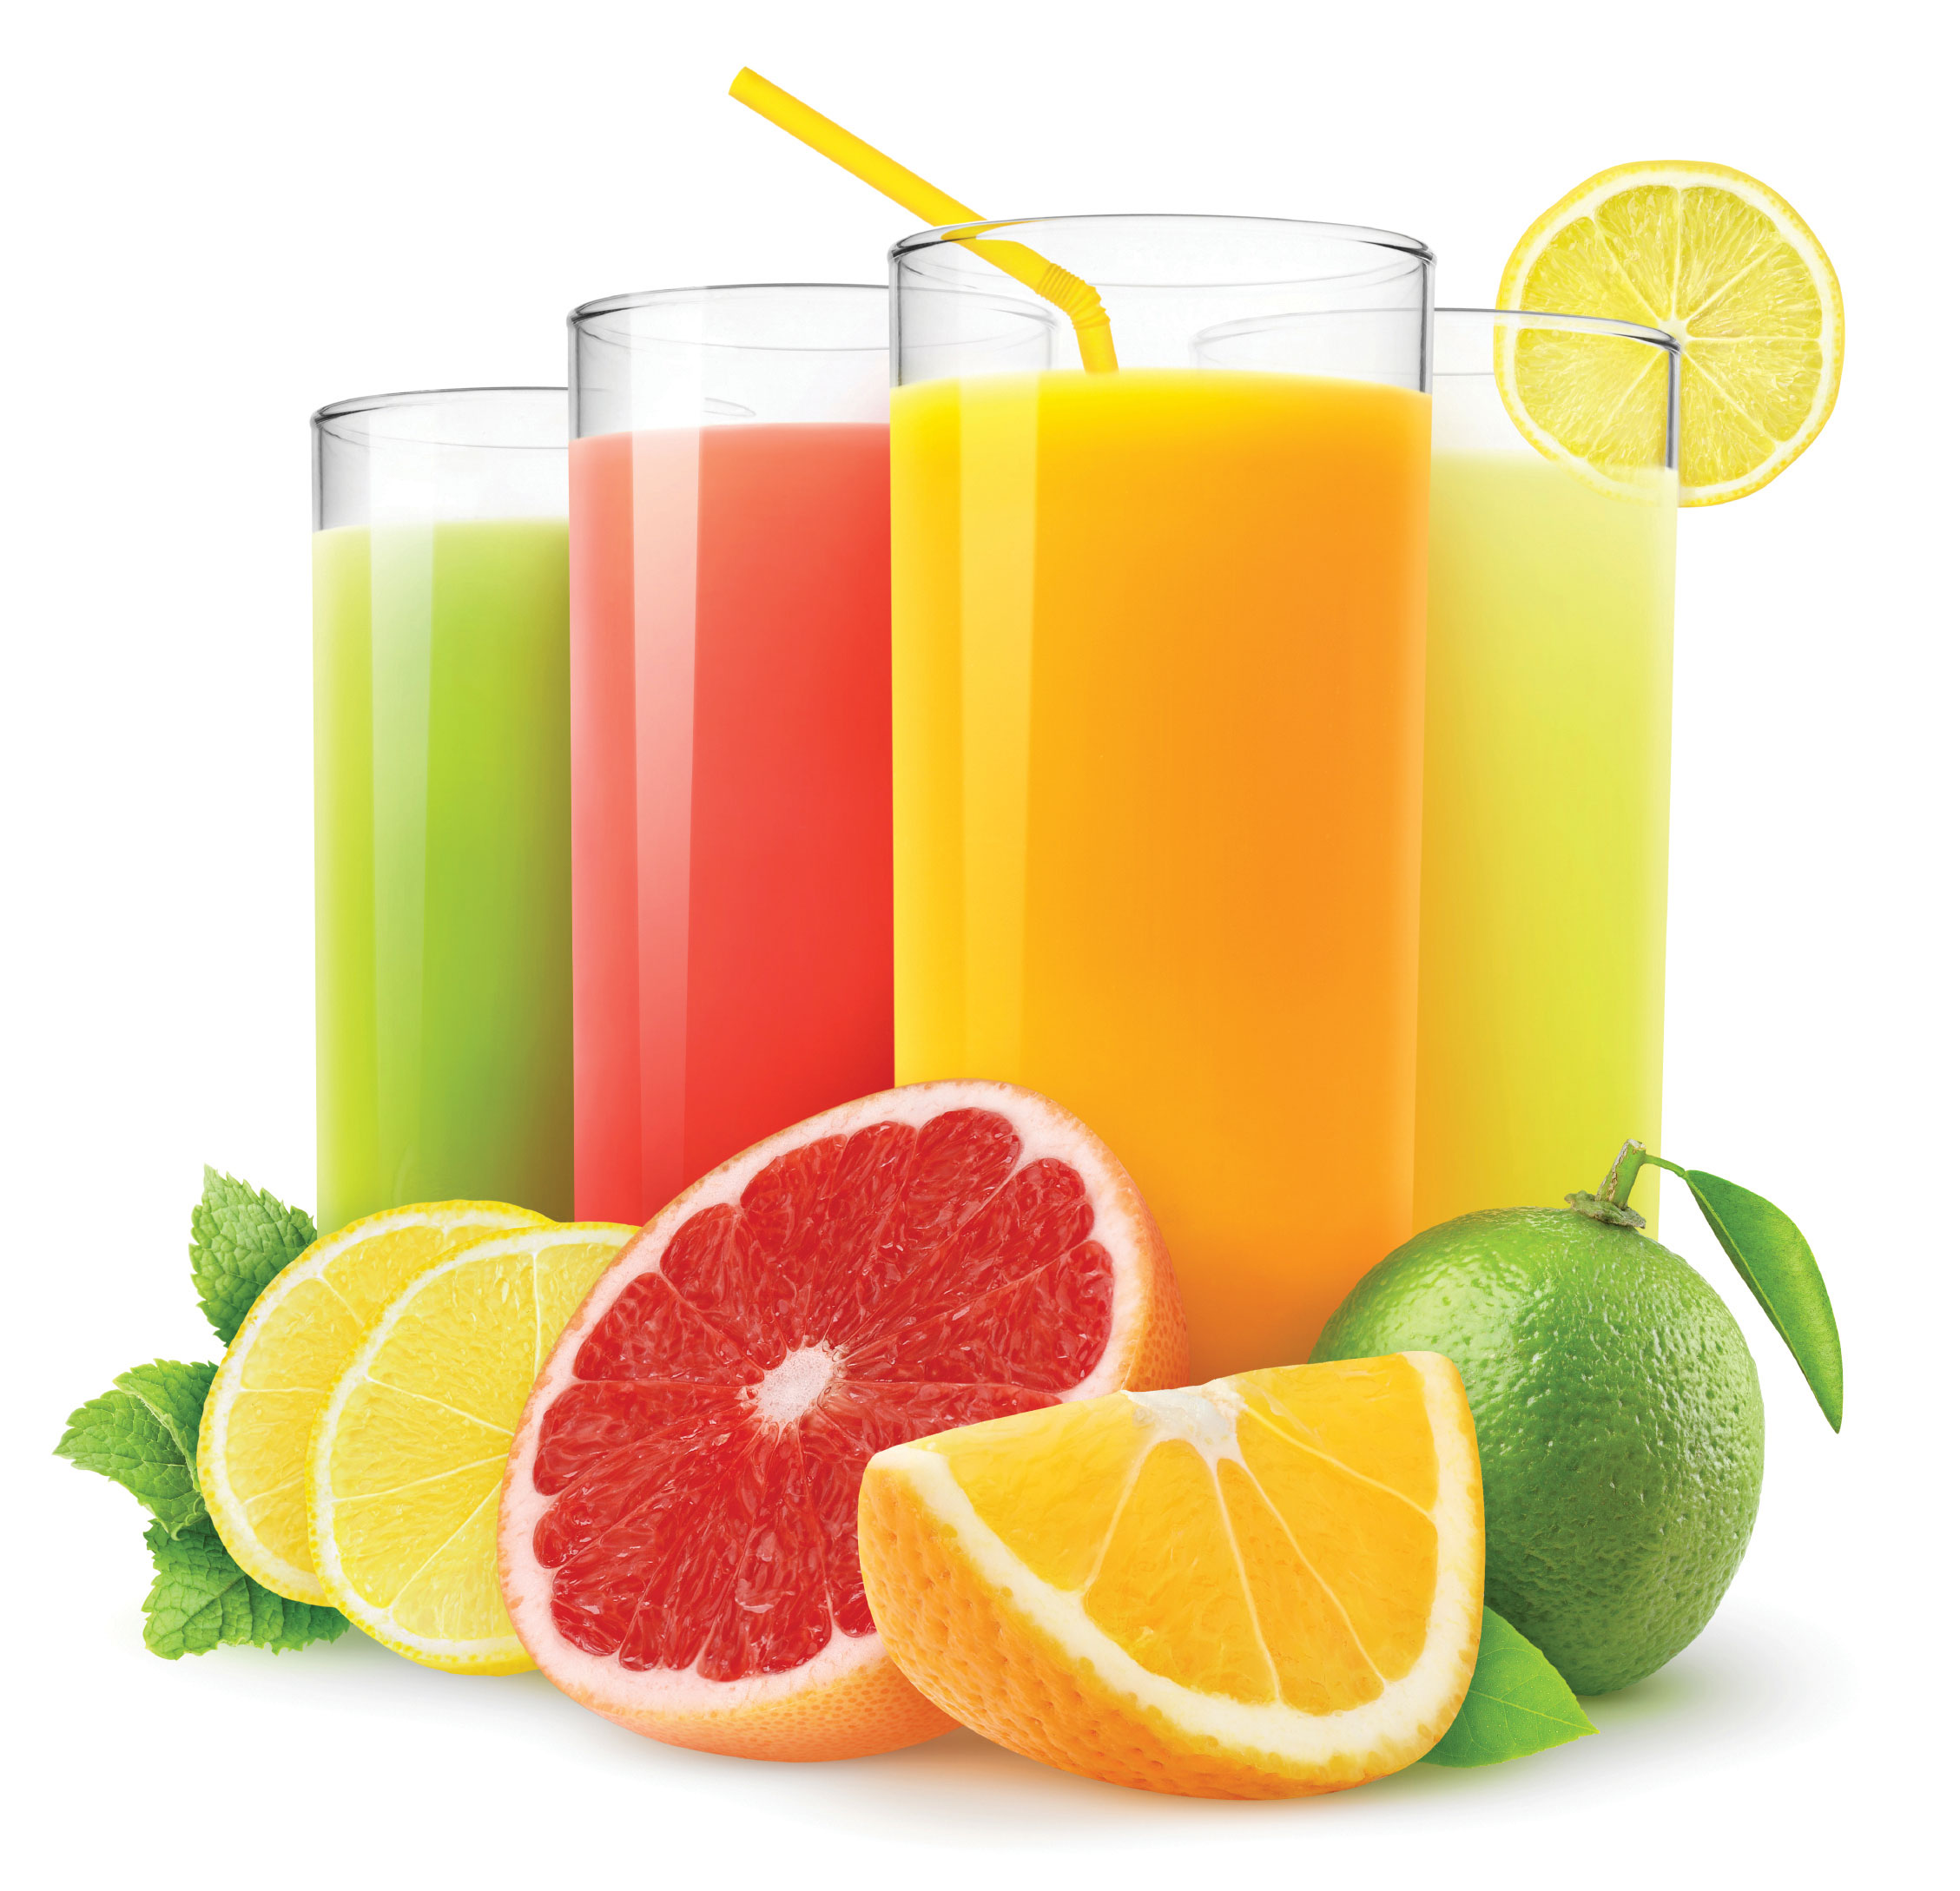 Fruit Juice Collection 4460.89 Kb